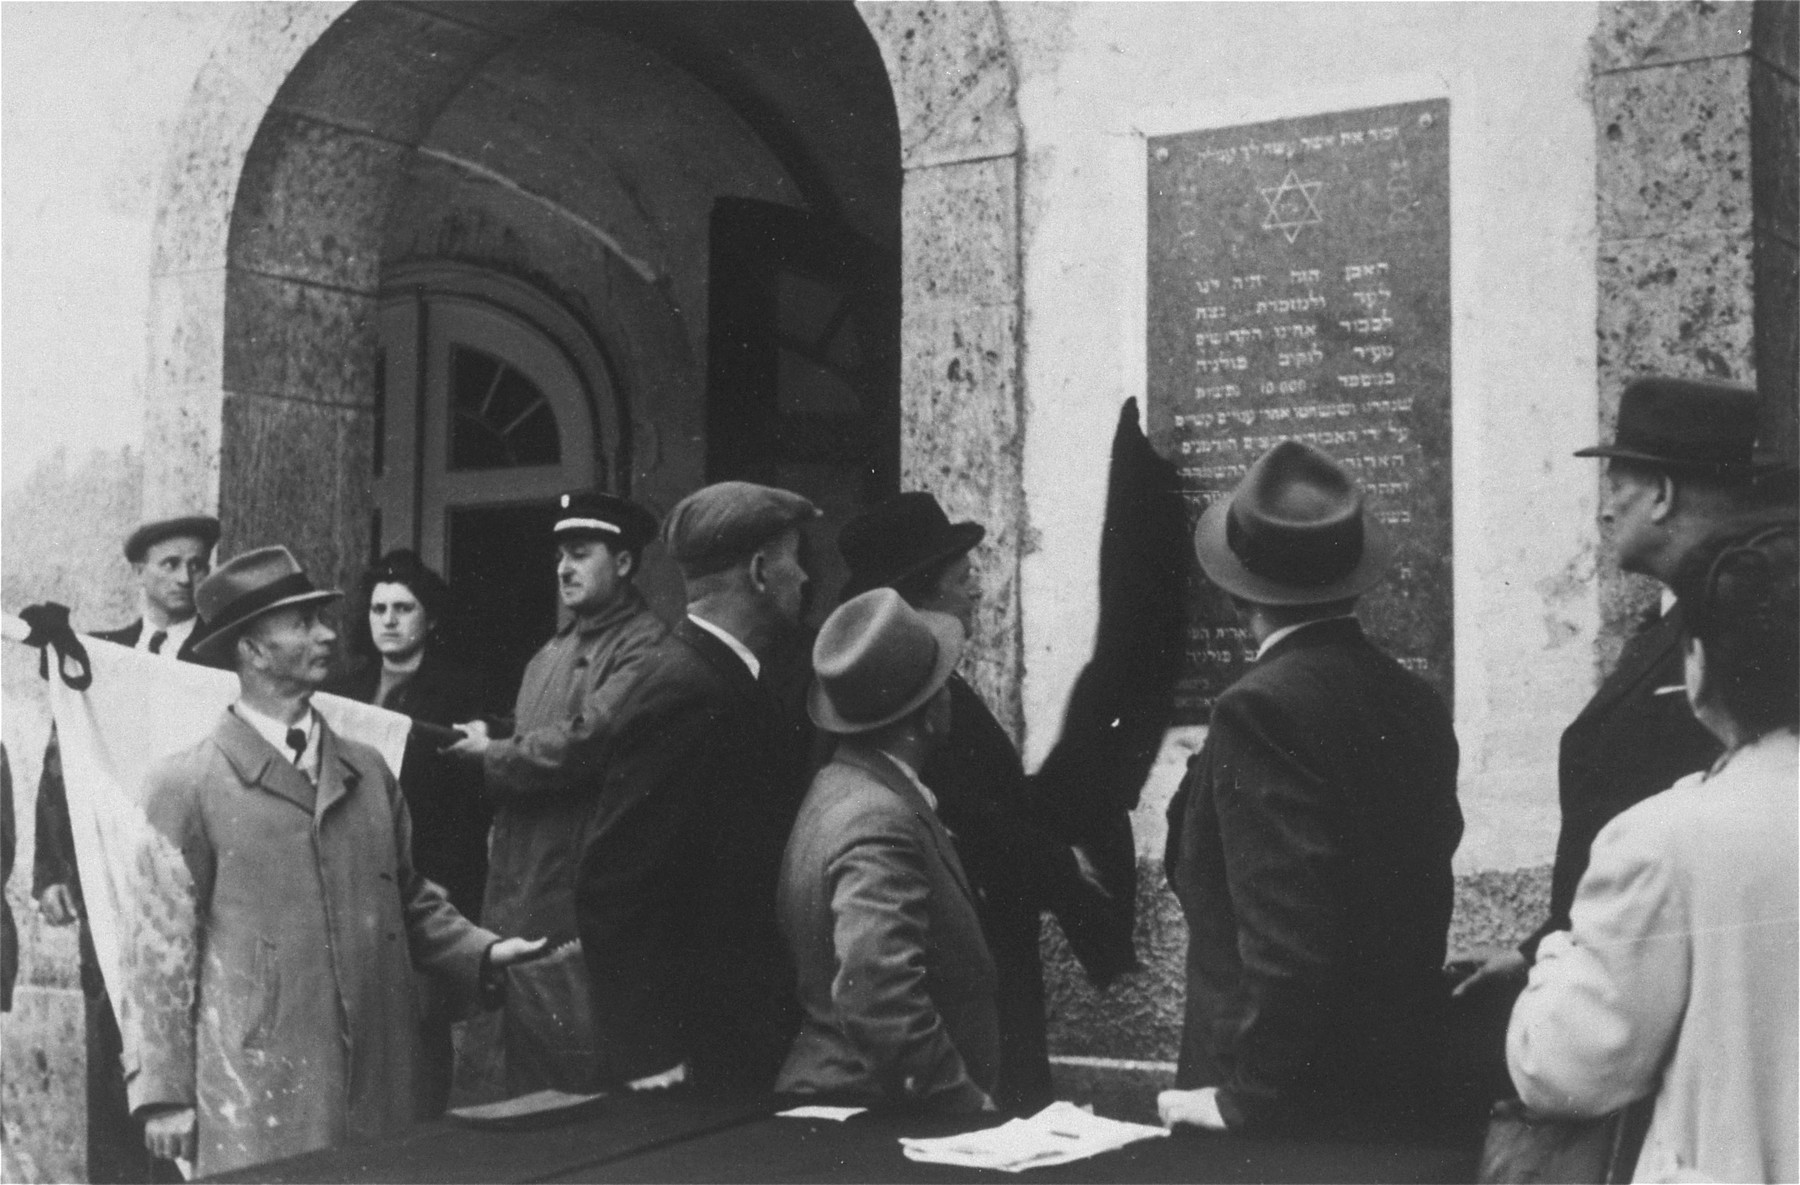 Survivors from Lukow, Poland dedicate a memorial tablet for holocaust victims from their town at a ceremony in Munich.